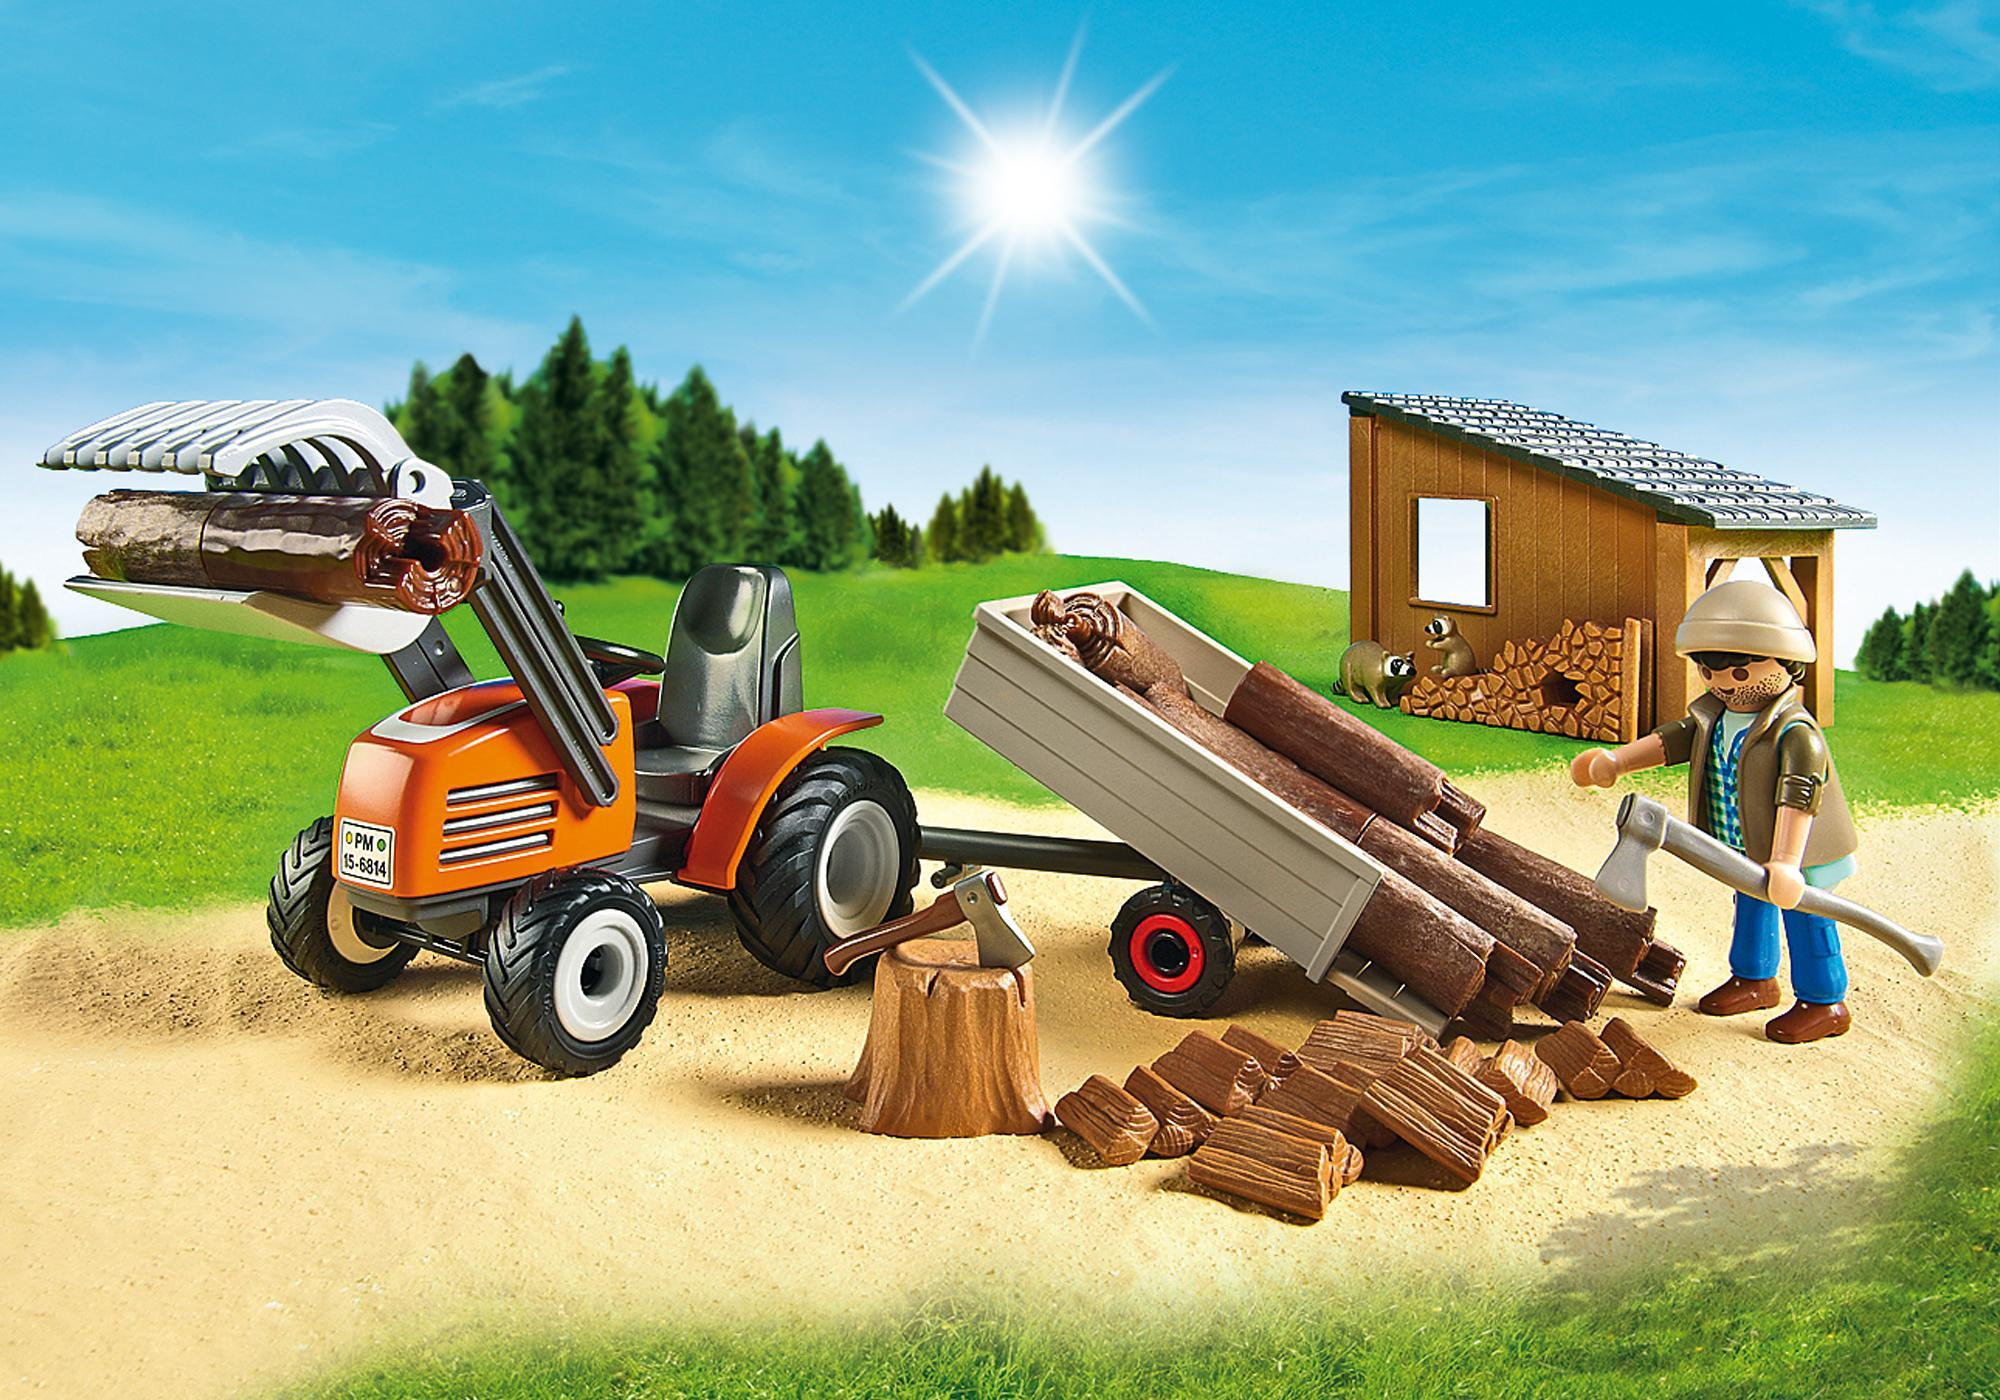 http://media.playmobil.com/i/playmobil/6814_product_extra1/Houthakker met tractor